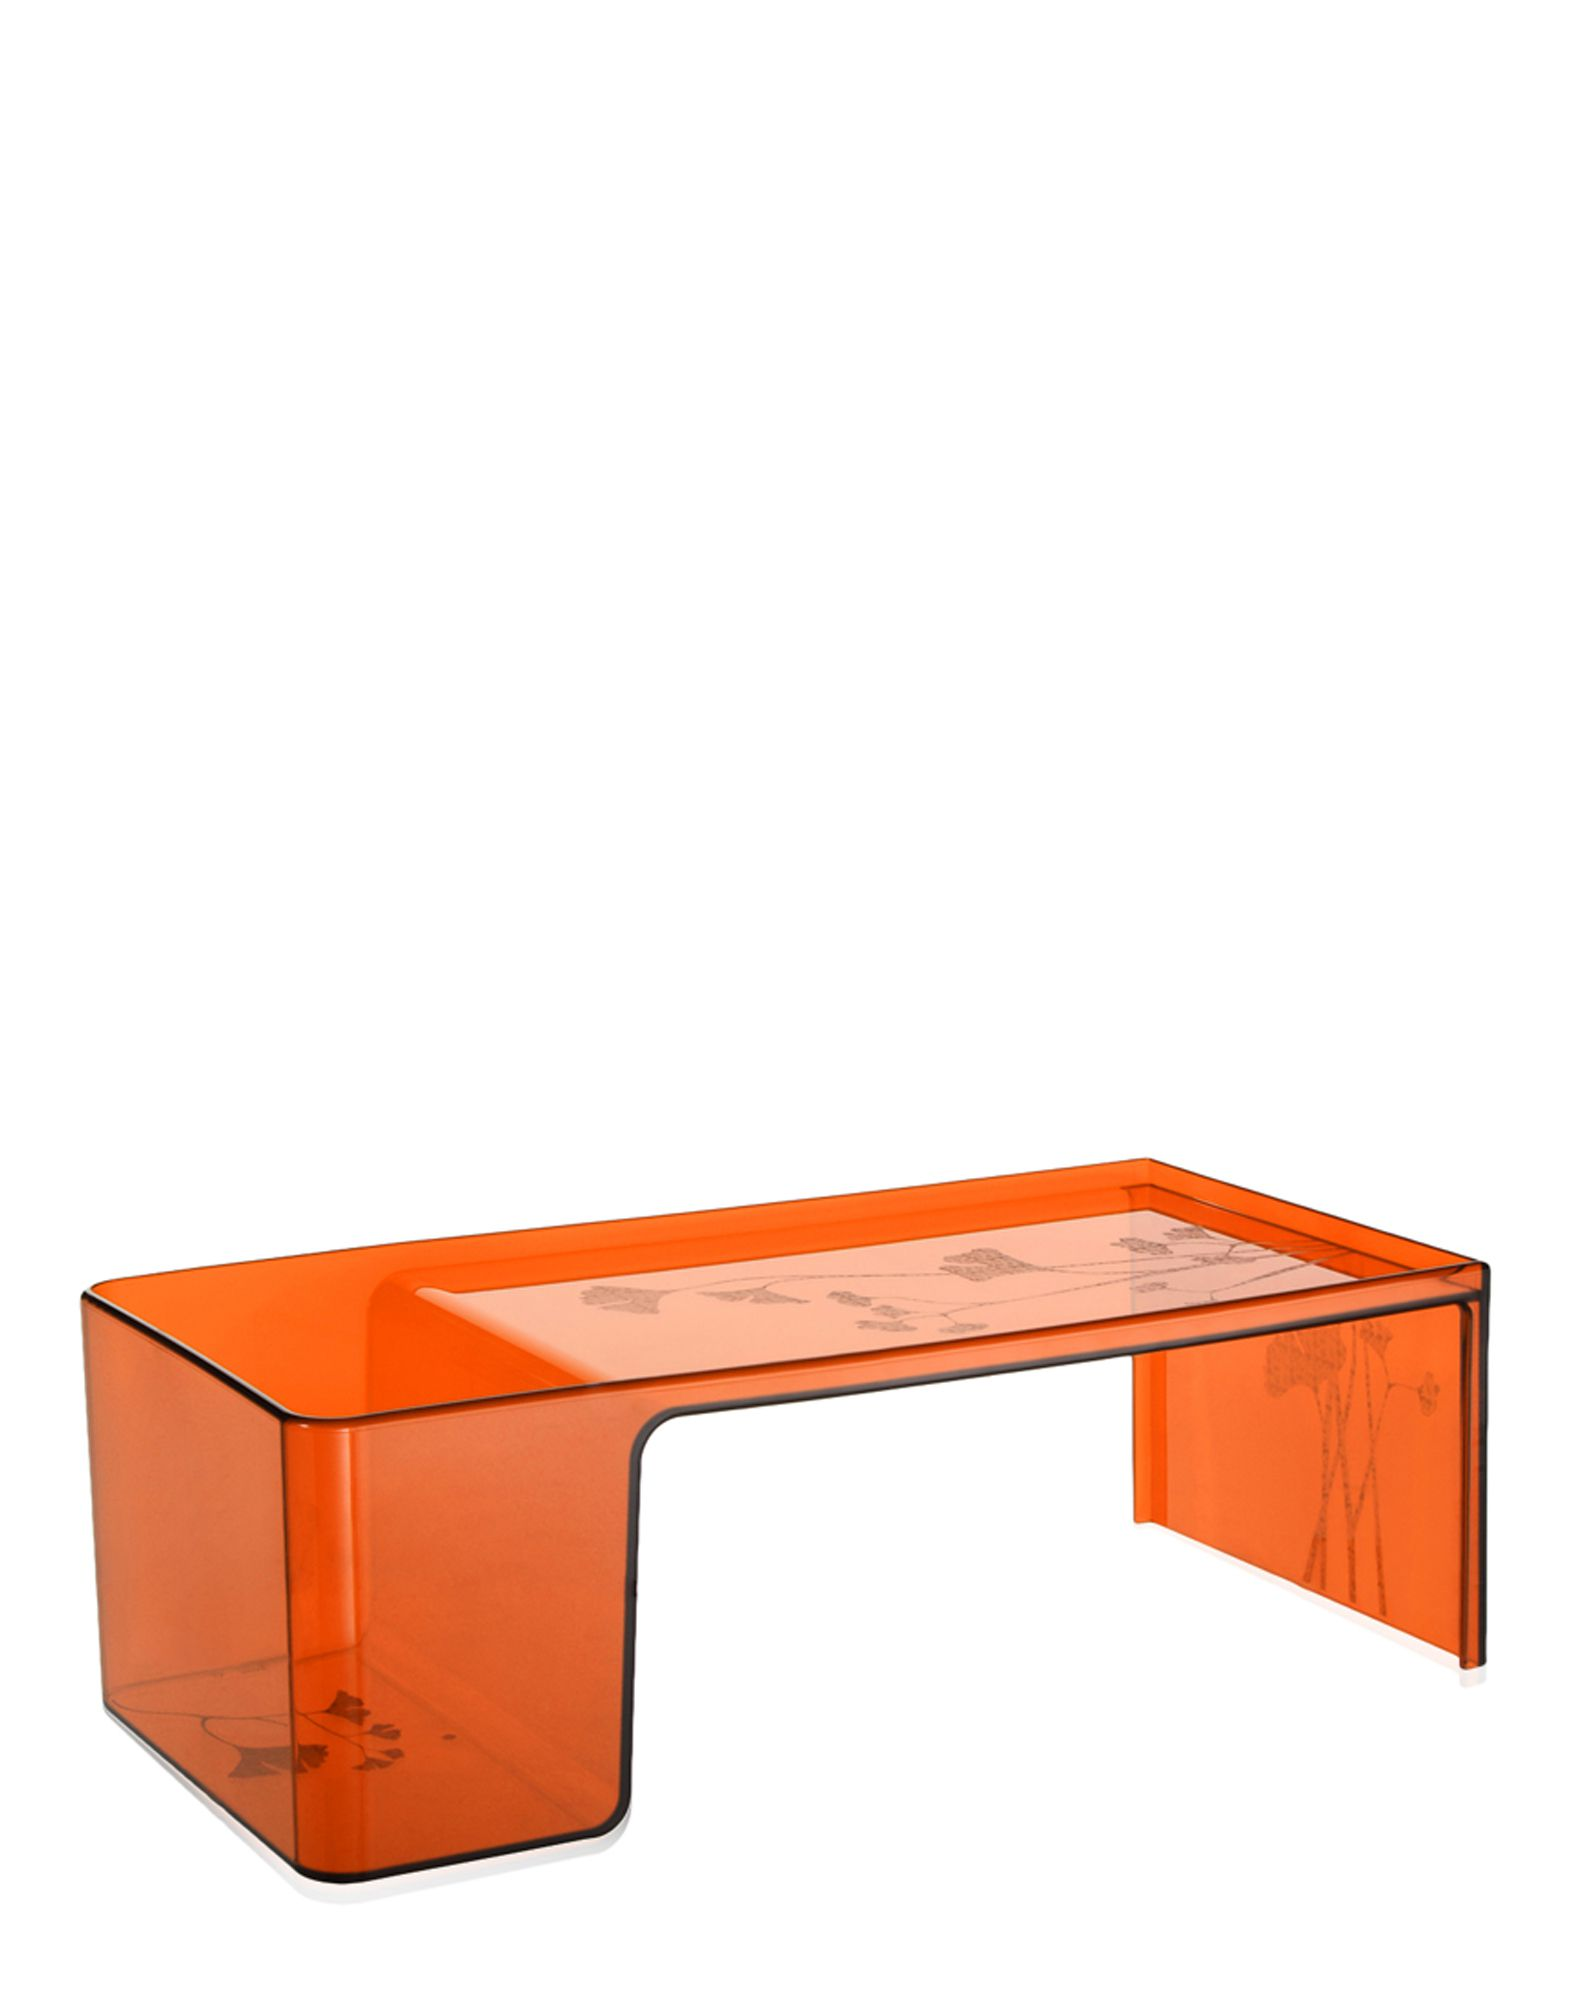 Table basse Kartell Usame Patricia Urquiola